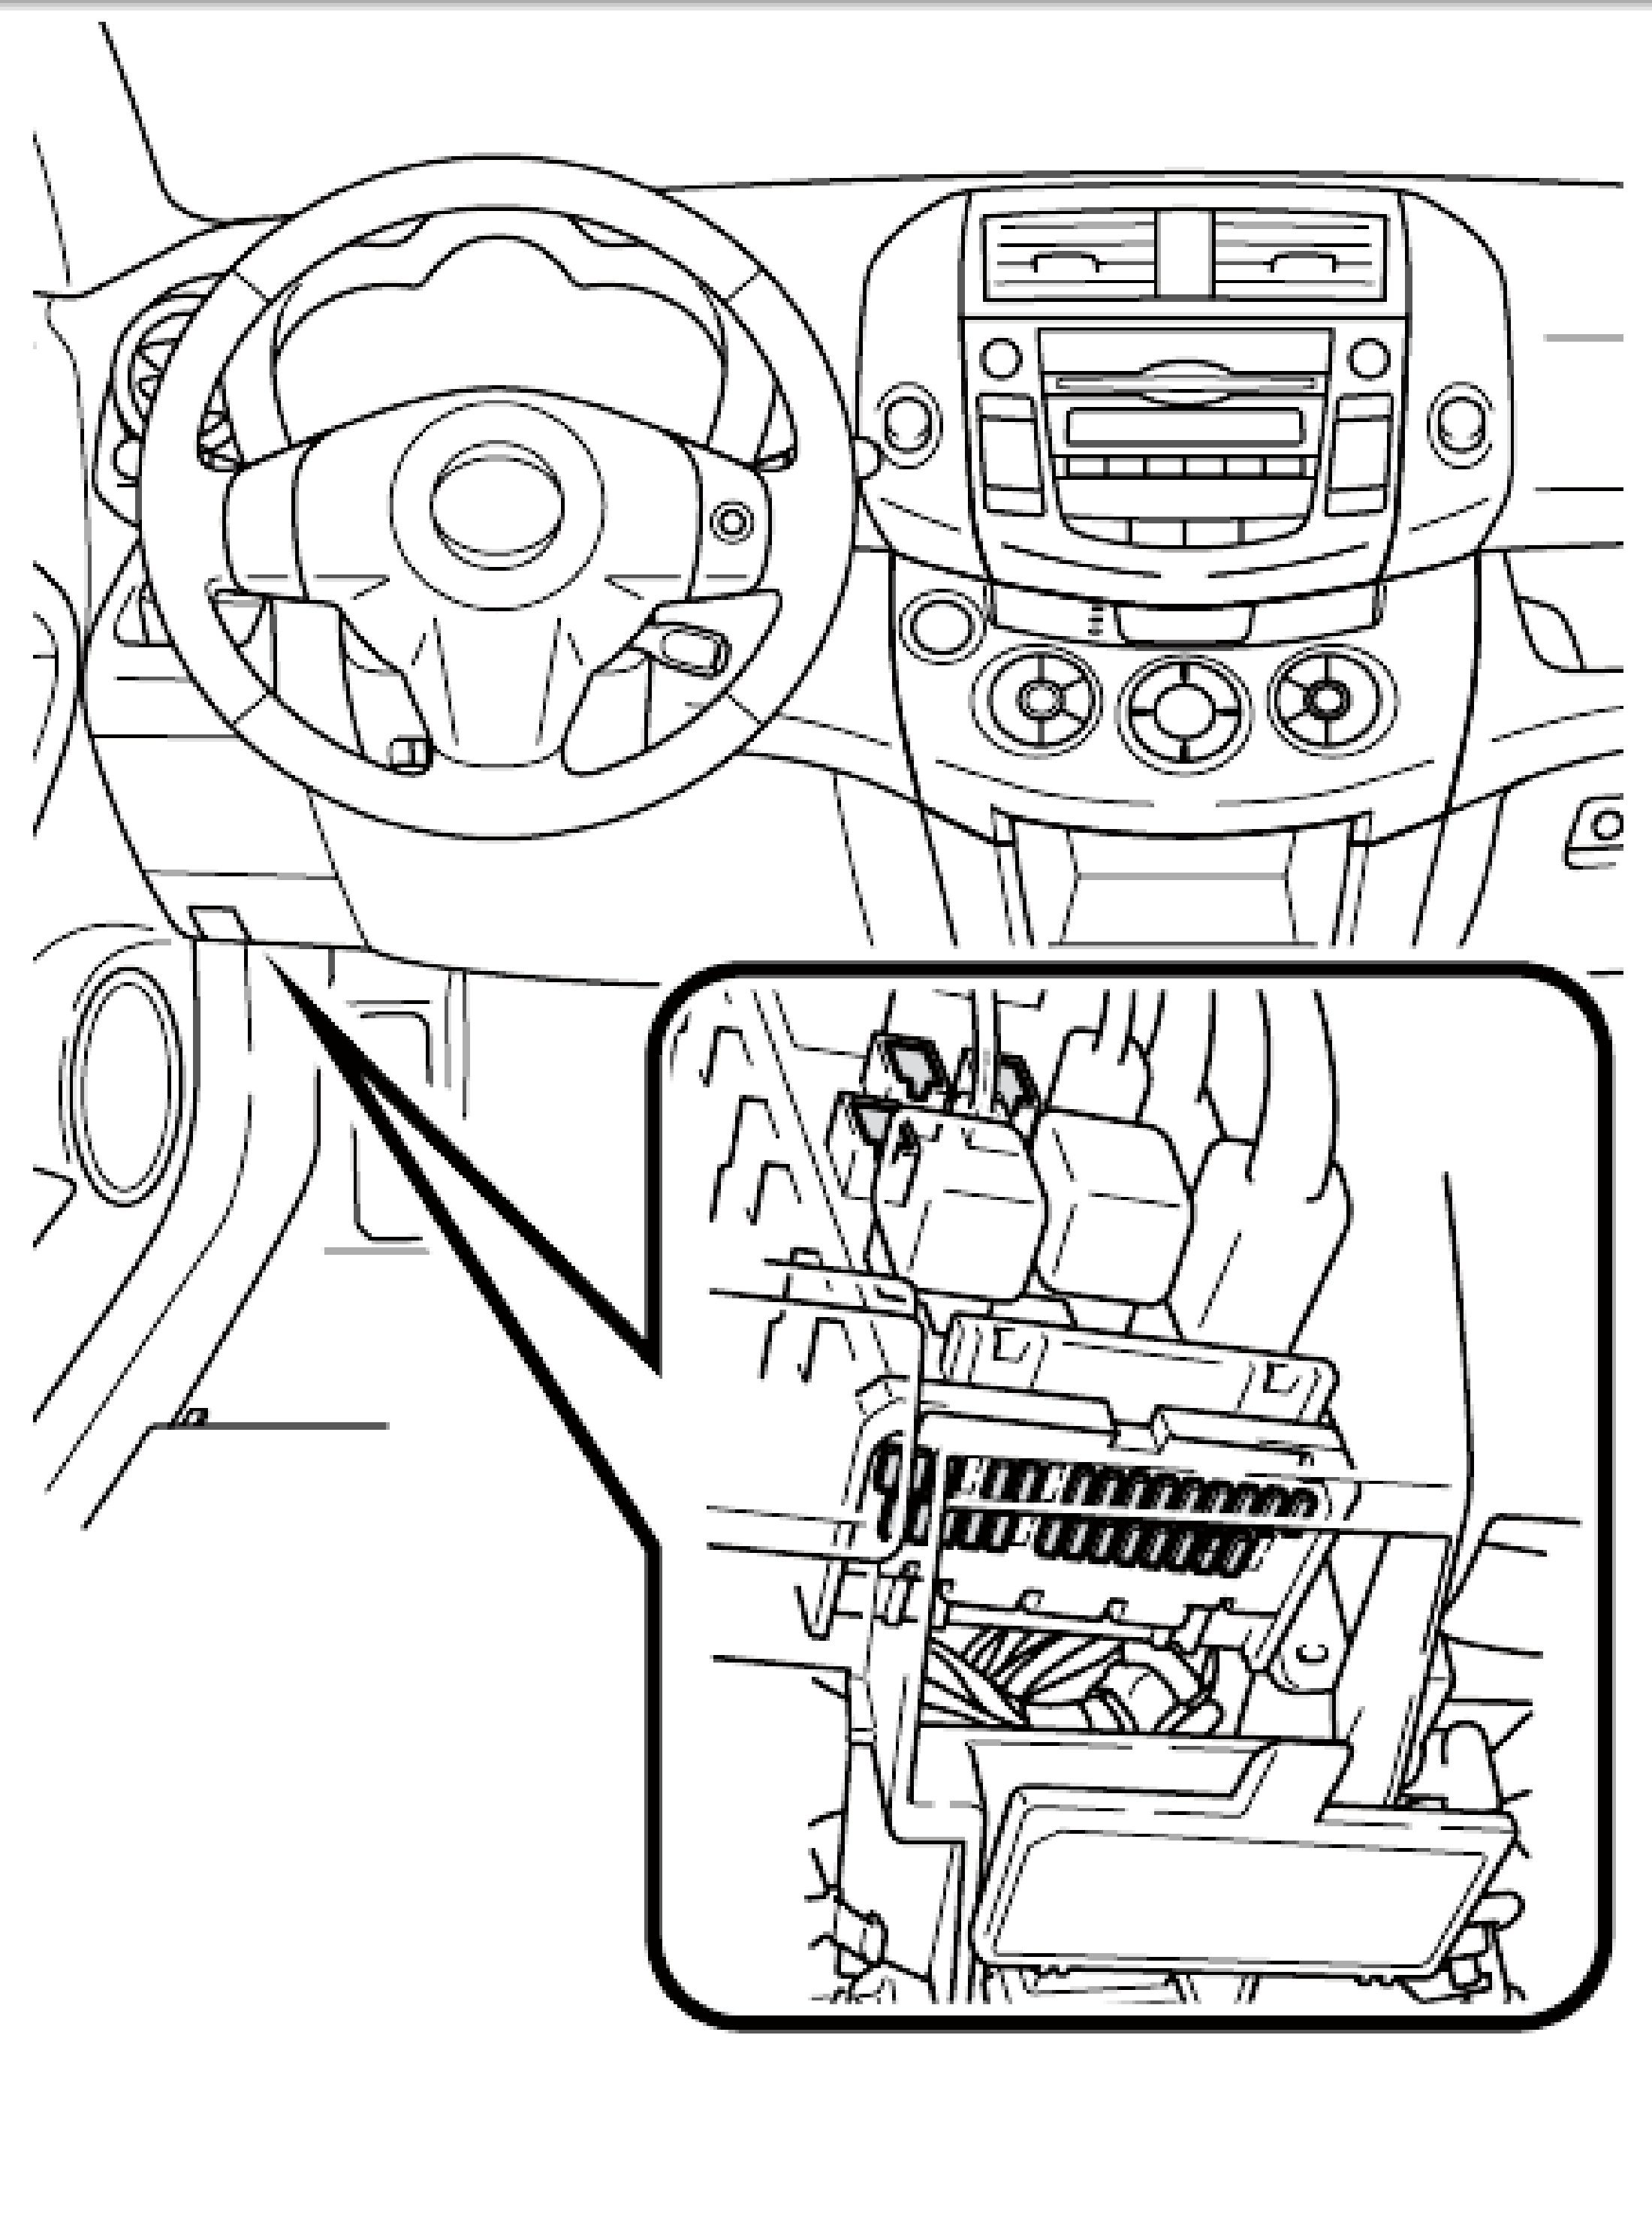 2006 toyota avalon fuse box   27 wiring diagram images